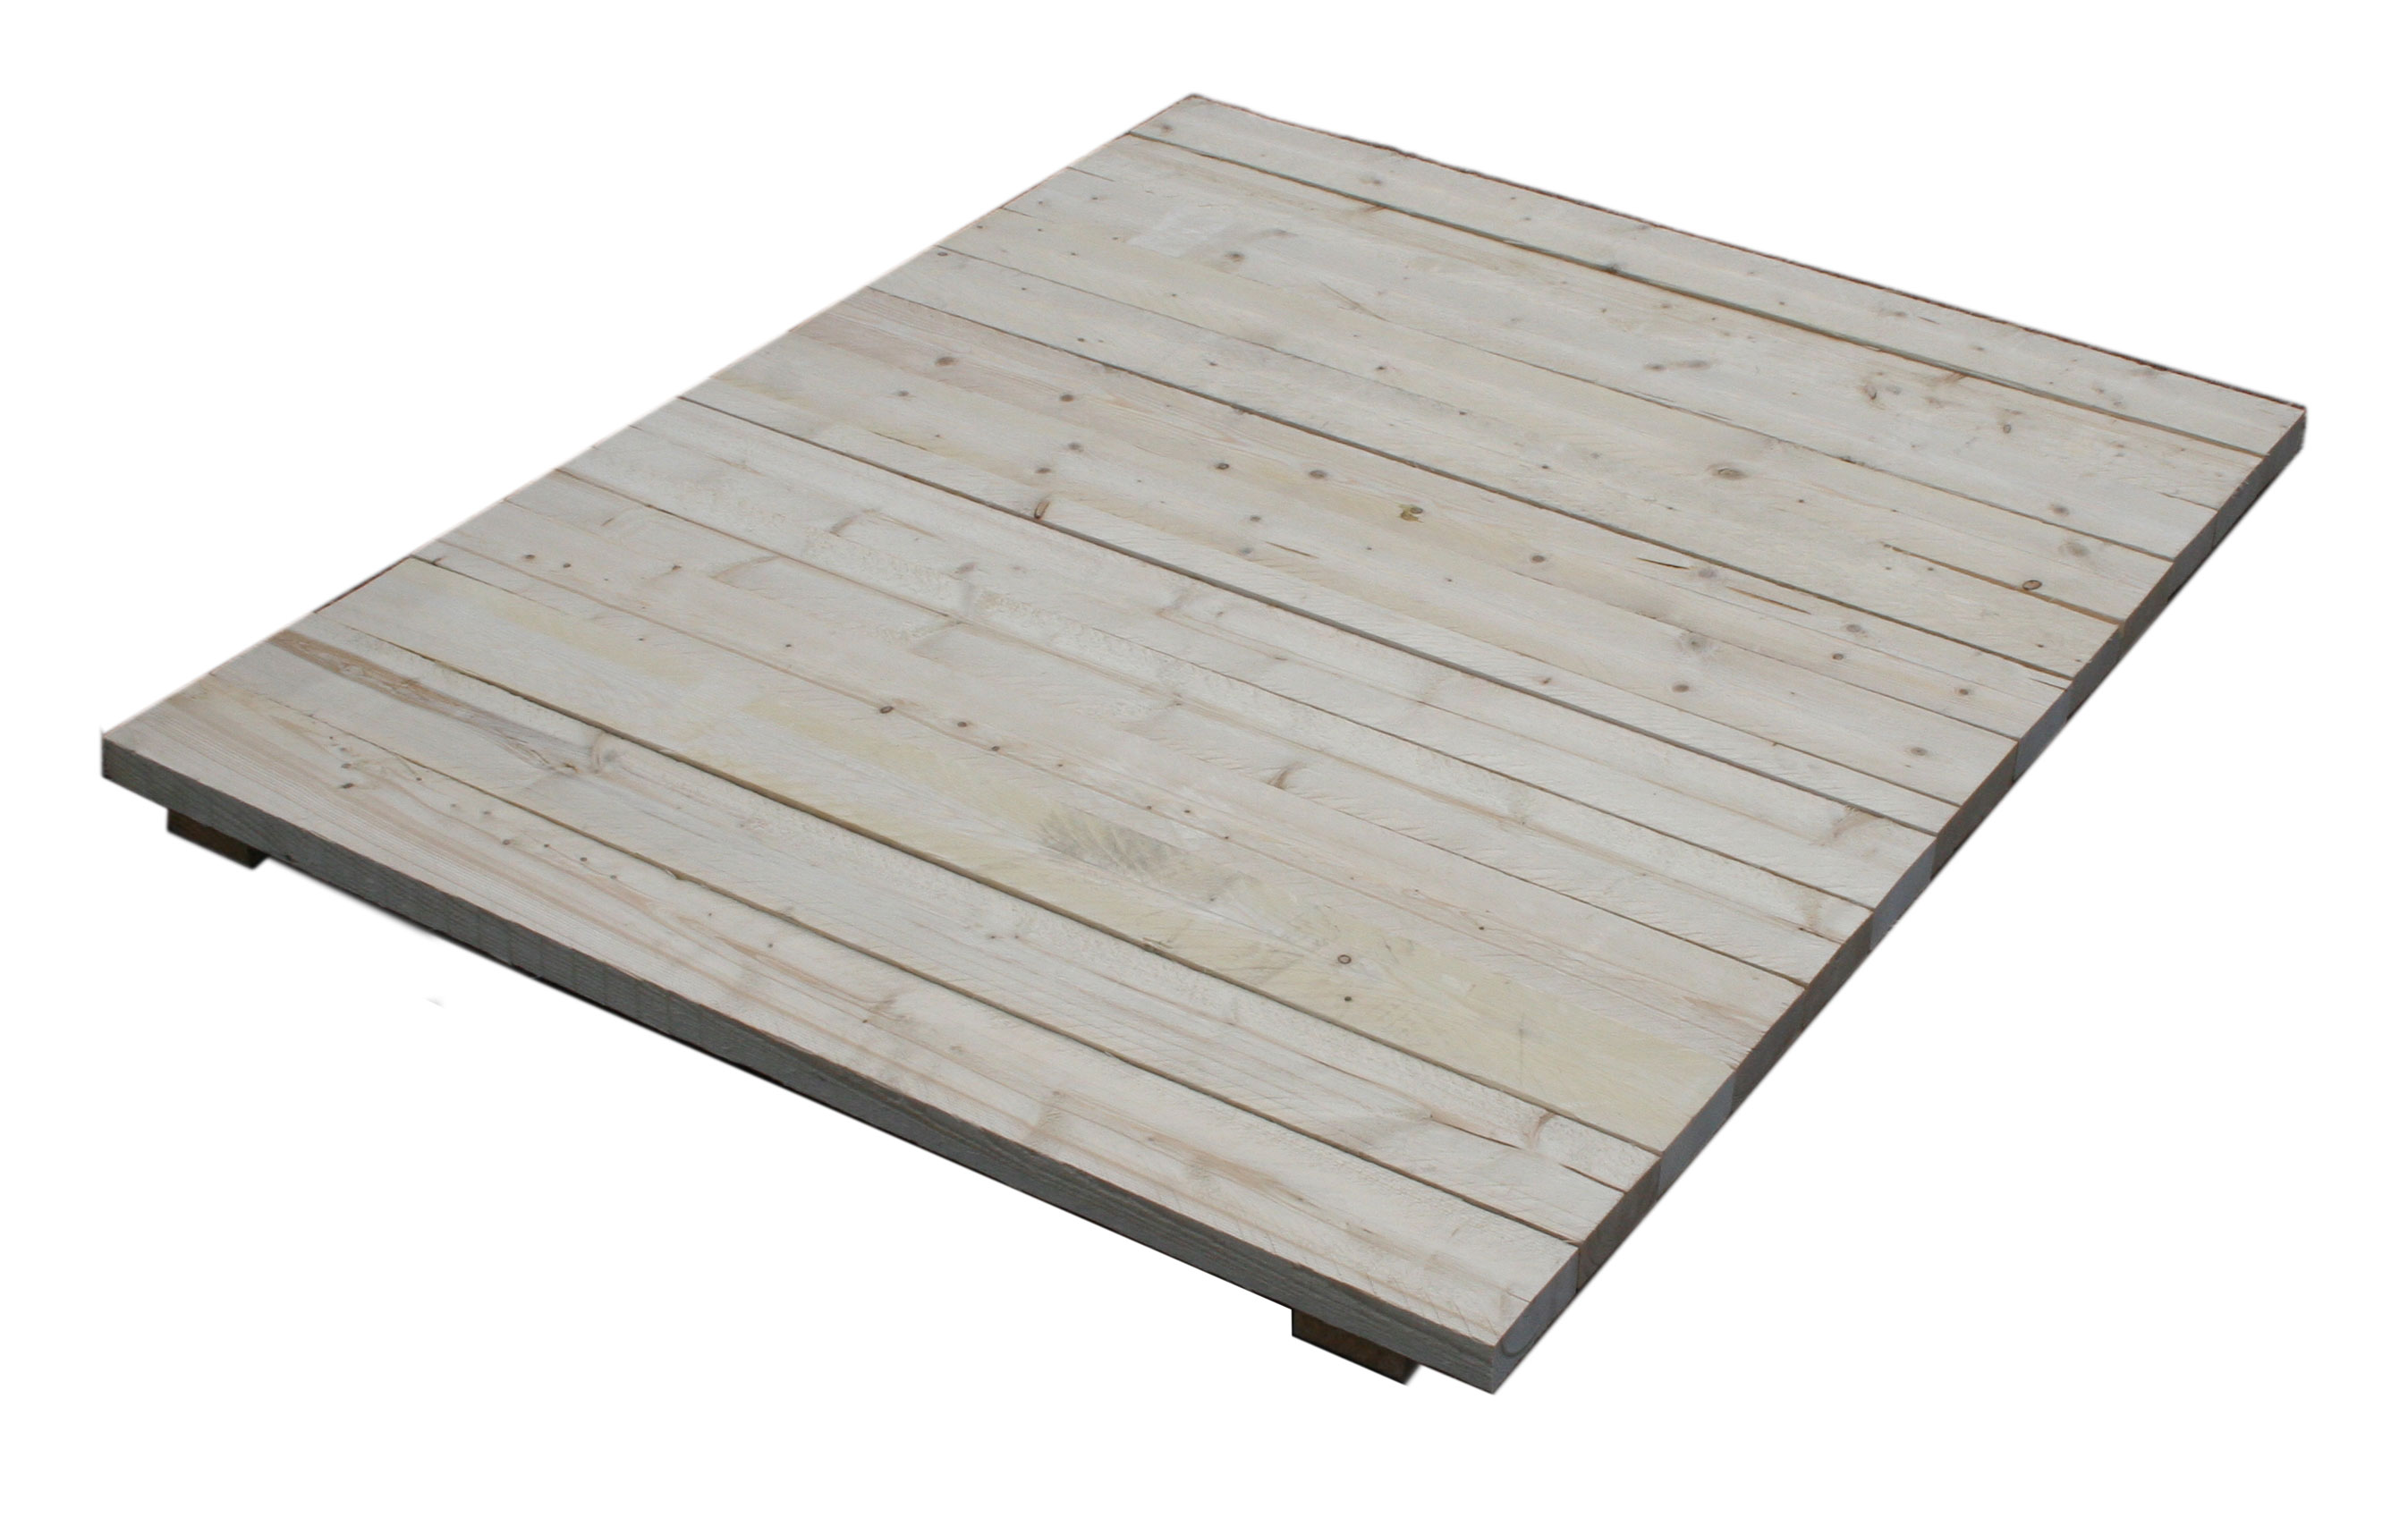 Timber decking closed board 32mm thick external tanalised for Timber decking thickness